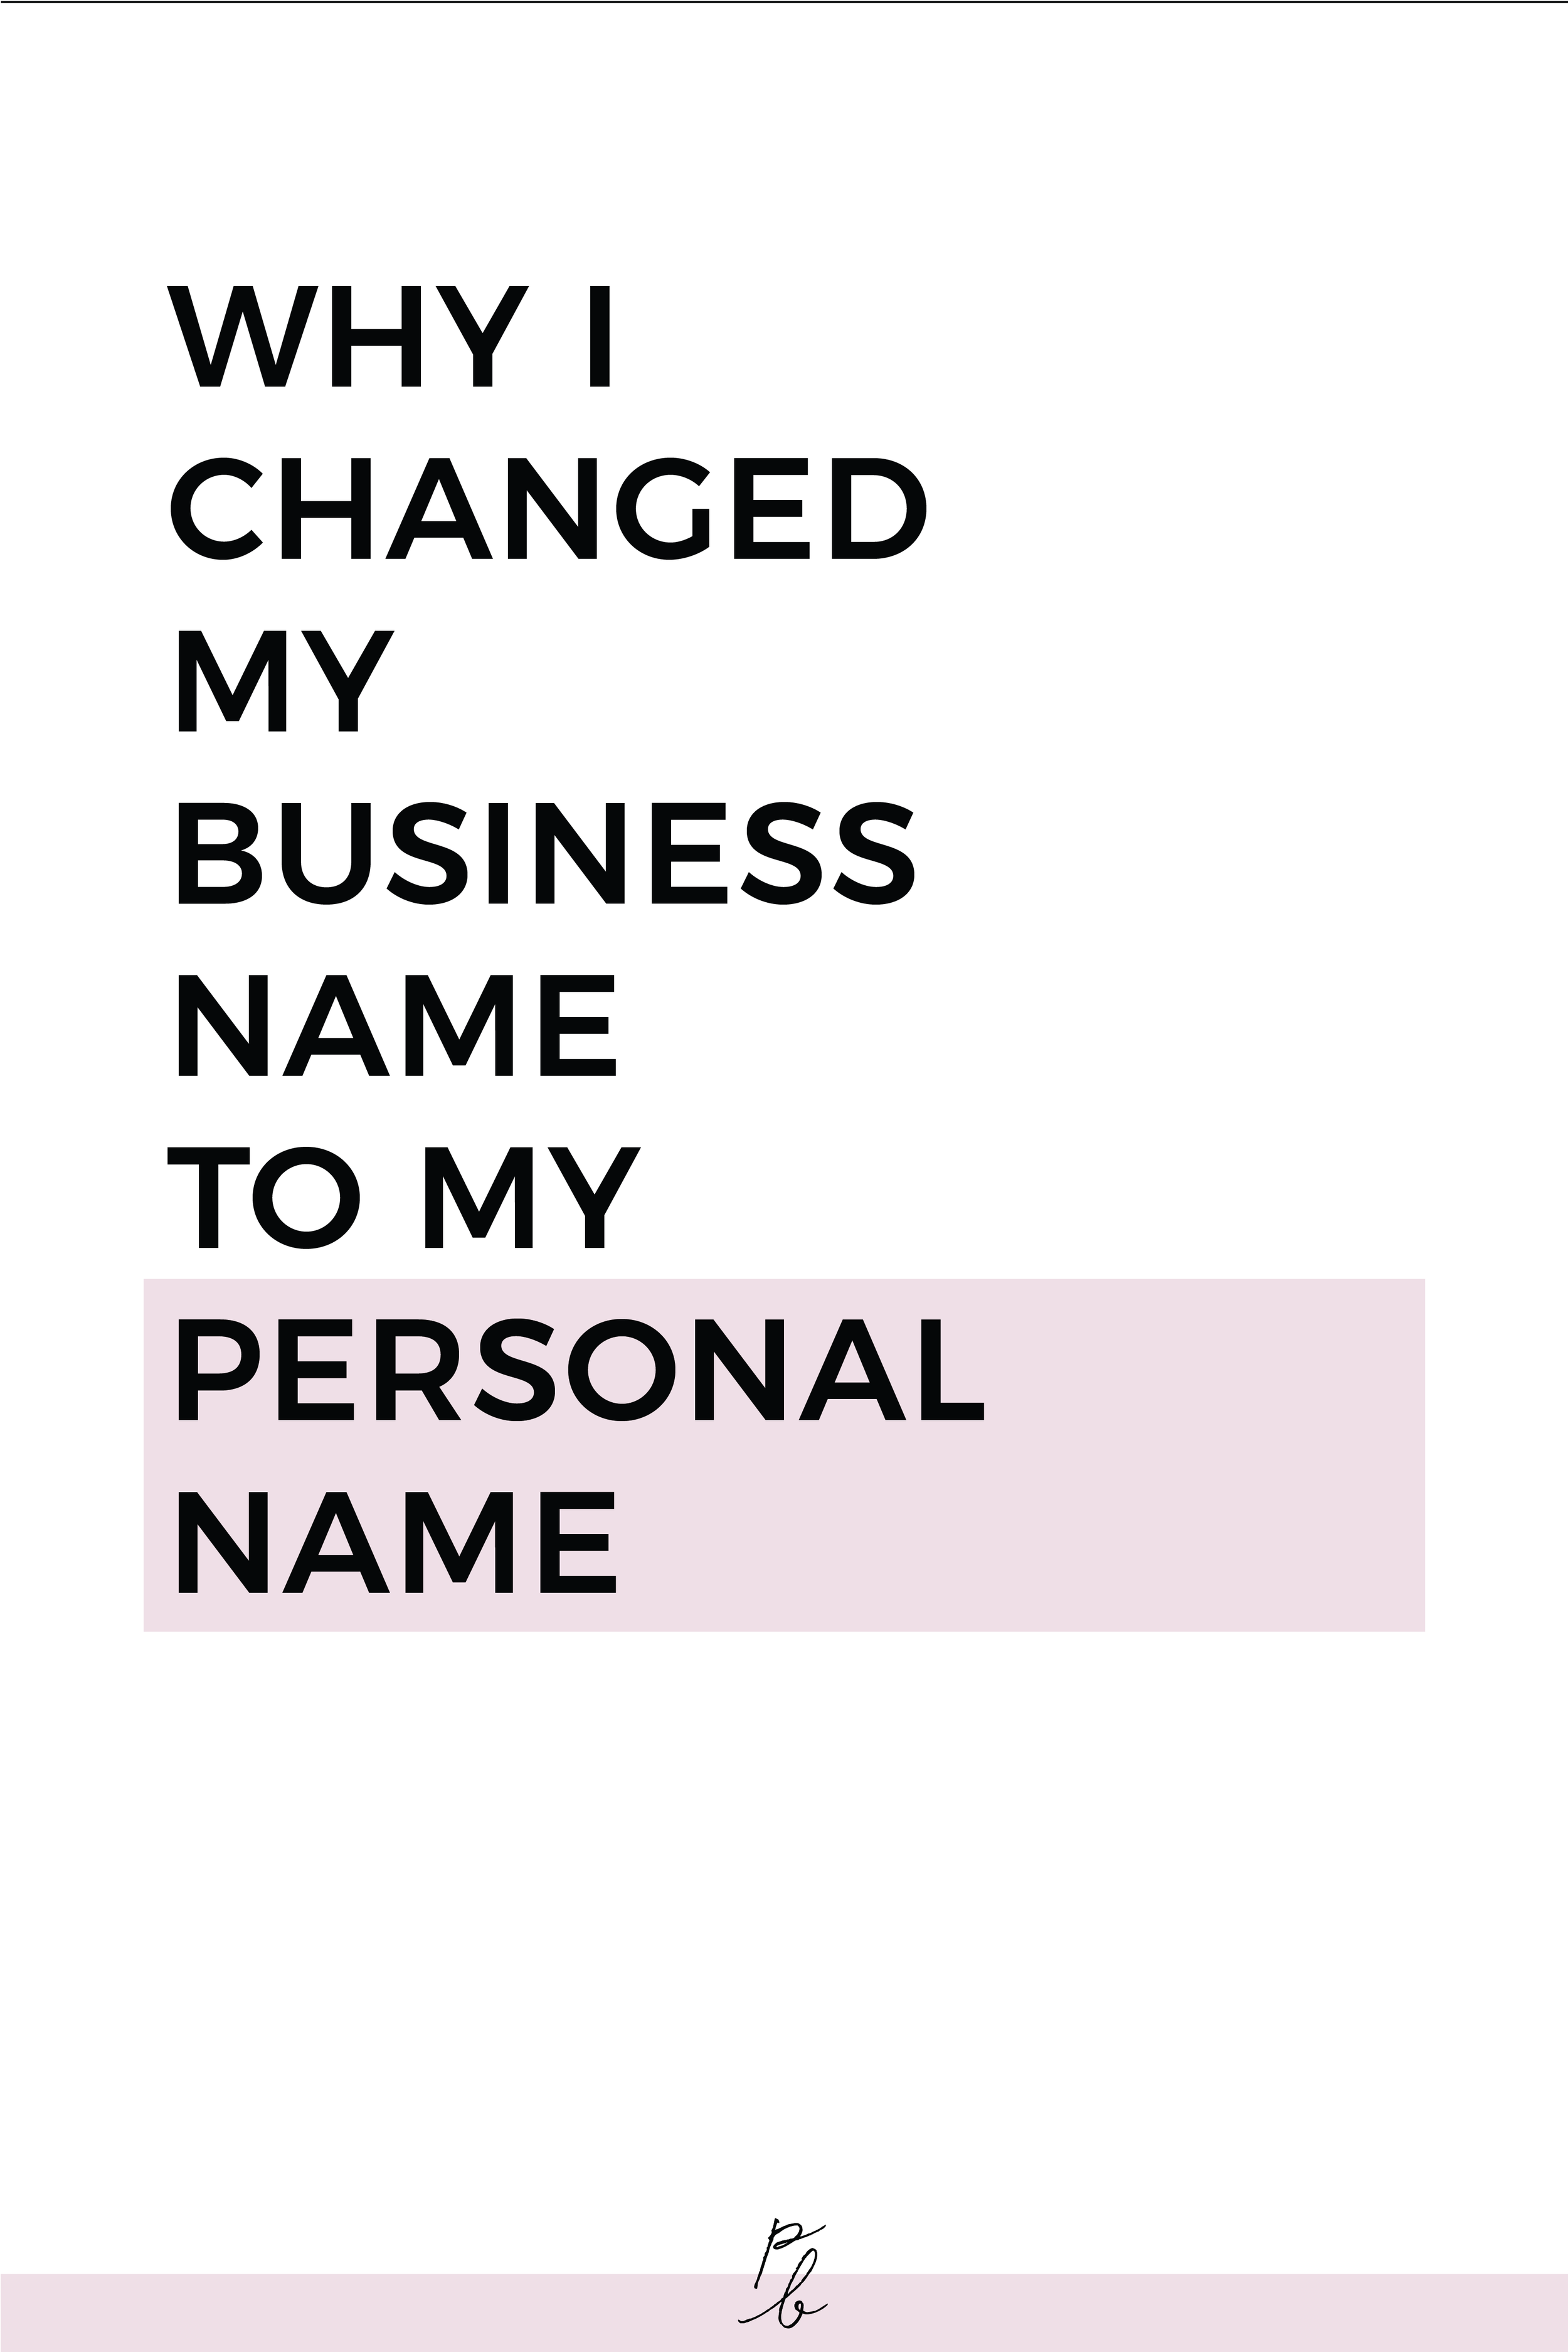 why i changed my business name to my personal name.png